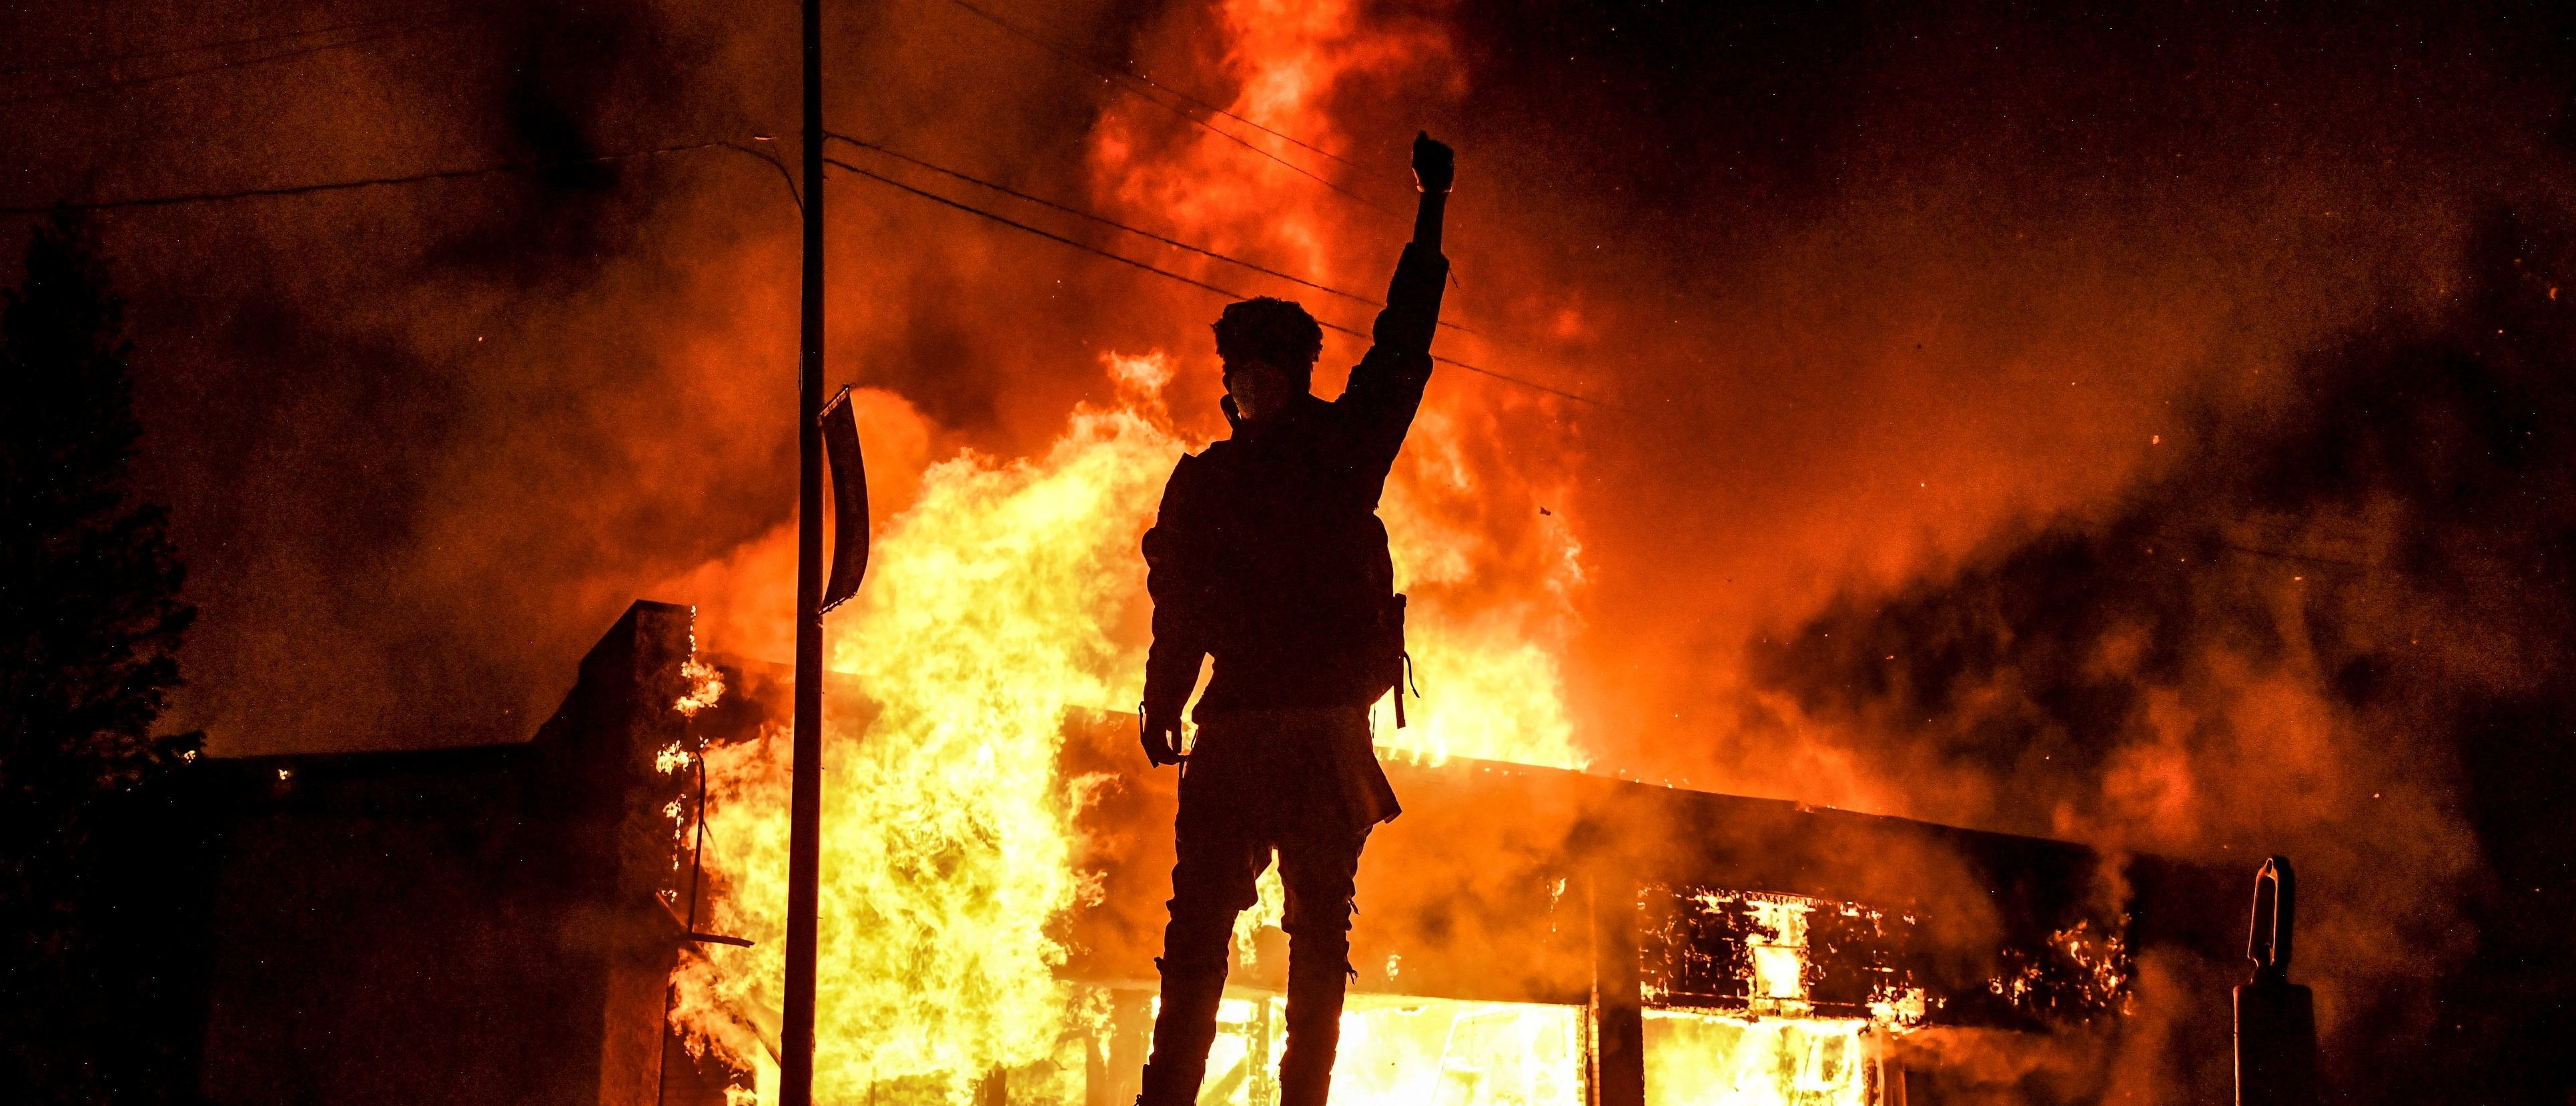 A protester reacts standing in front of a burning building set on fire during a demonstration in Minneapolis, Minnesota, on May 29, 2020, over the death of George Floyd, a black man who died after a white policeman kneeled on his neck for several minutes. (CHANDAN KHANNA/AFP via Getty Images)